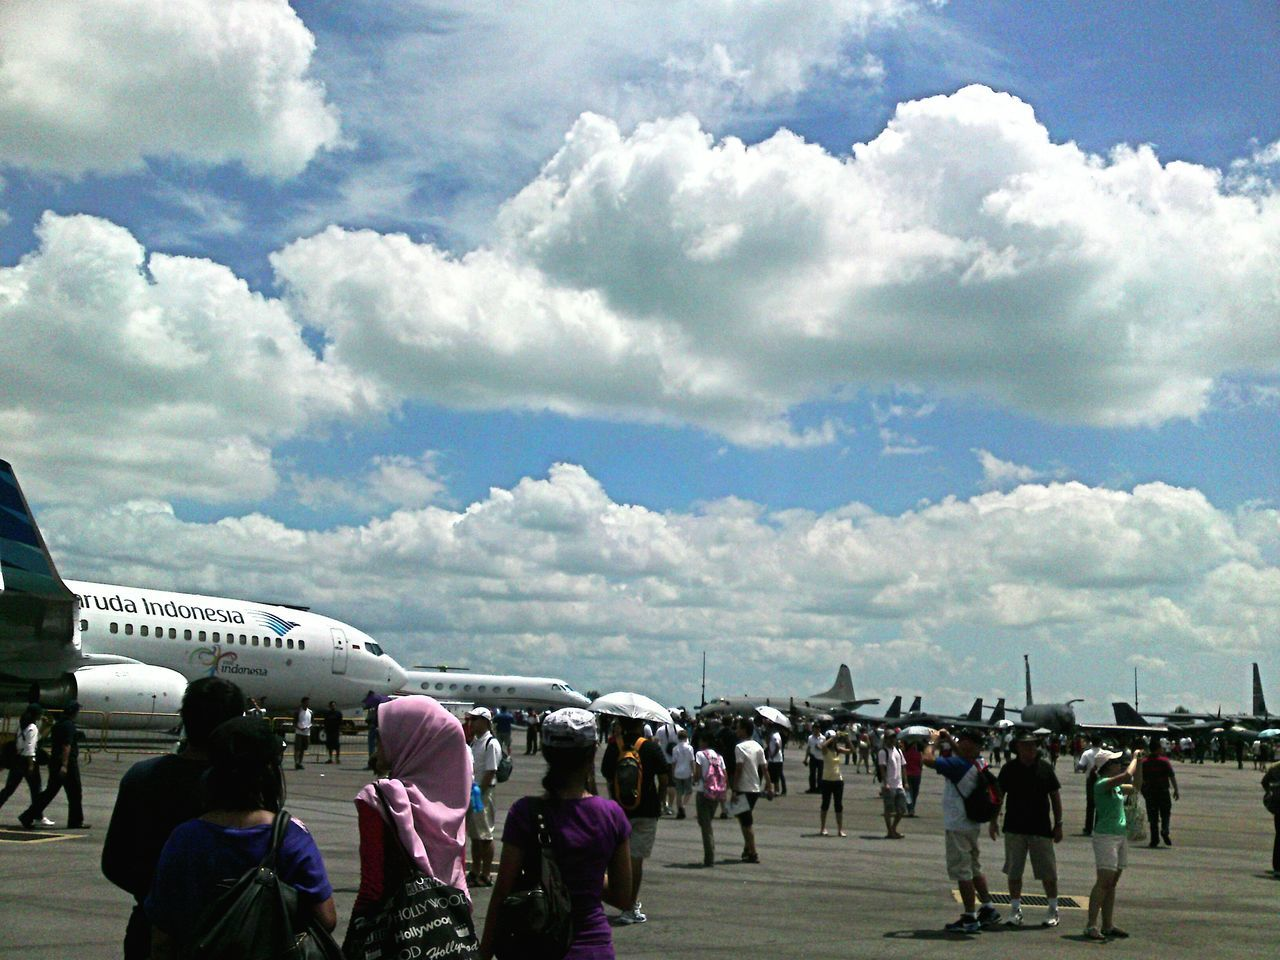 cloud - sky, sky, airplane, large group of people, air vehicle, airport, day, transportation, men, real people, runway, beach, airport runway, women, outdoors, vacations, nature, airshow, people